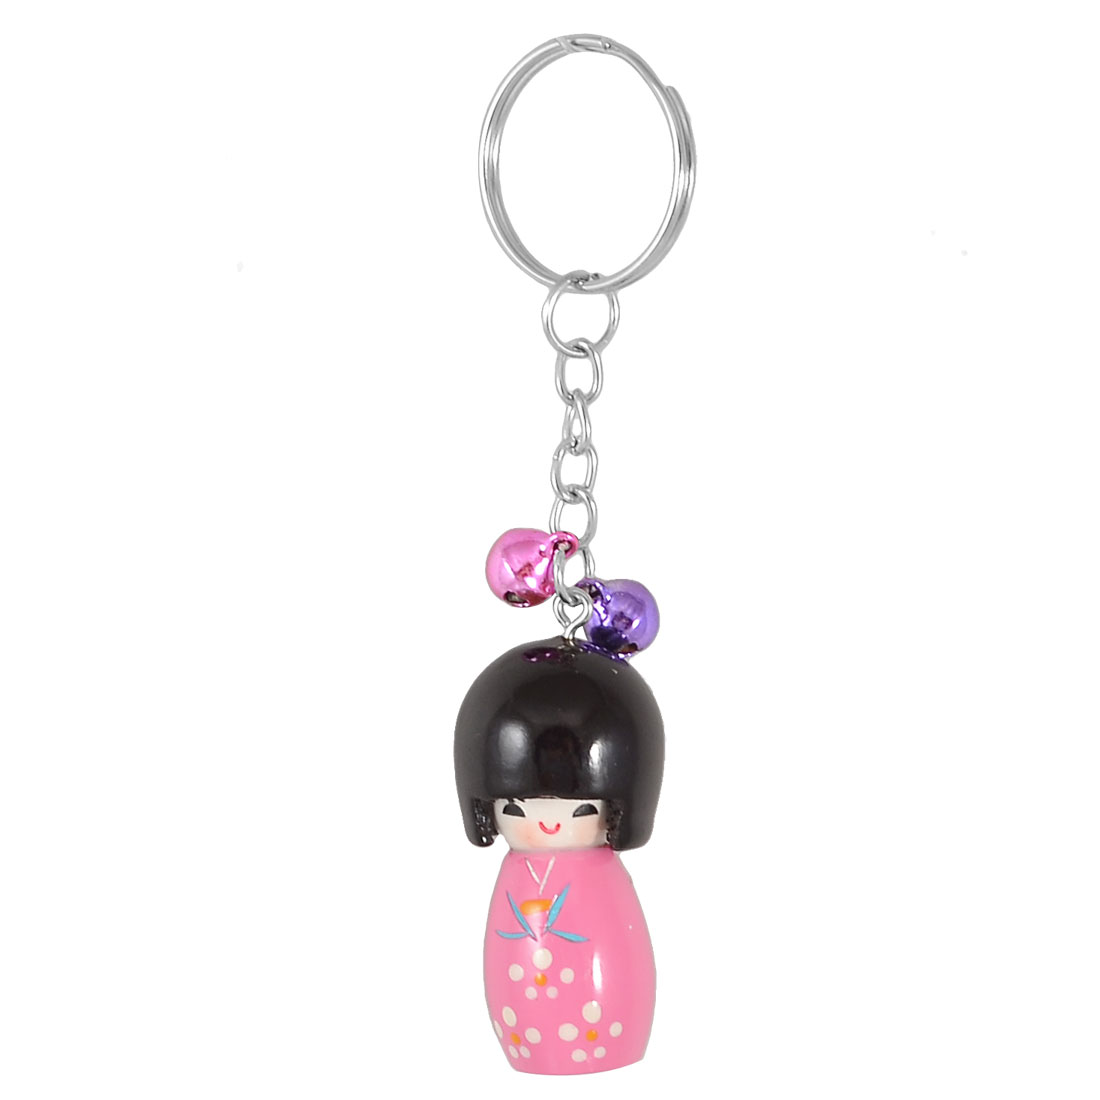 Pink Wood Japanese Doll Pendant Round Metal Ring Keychain Gift